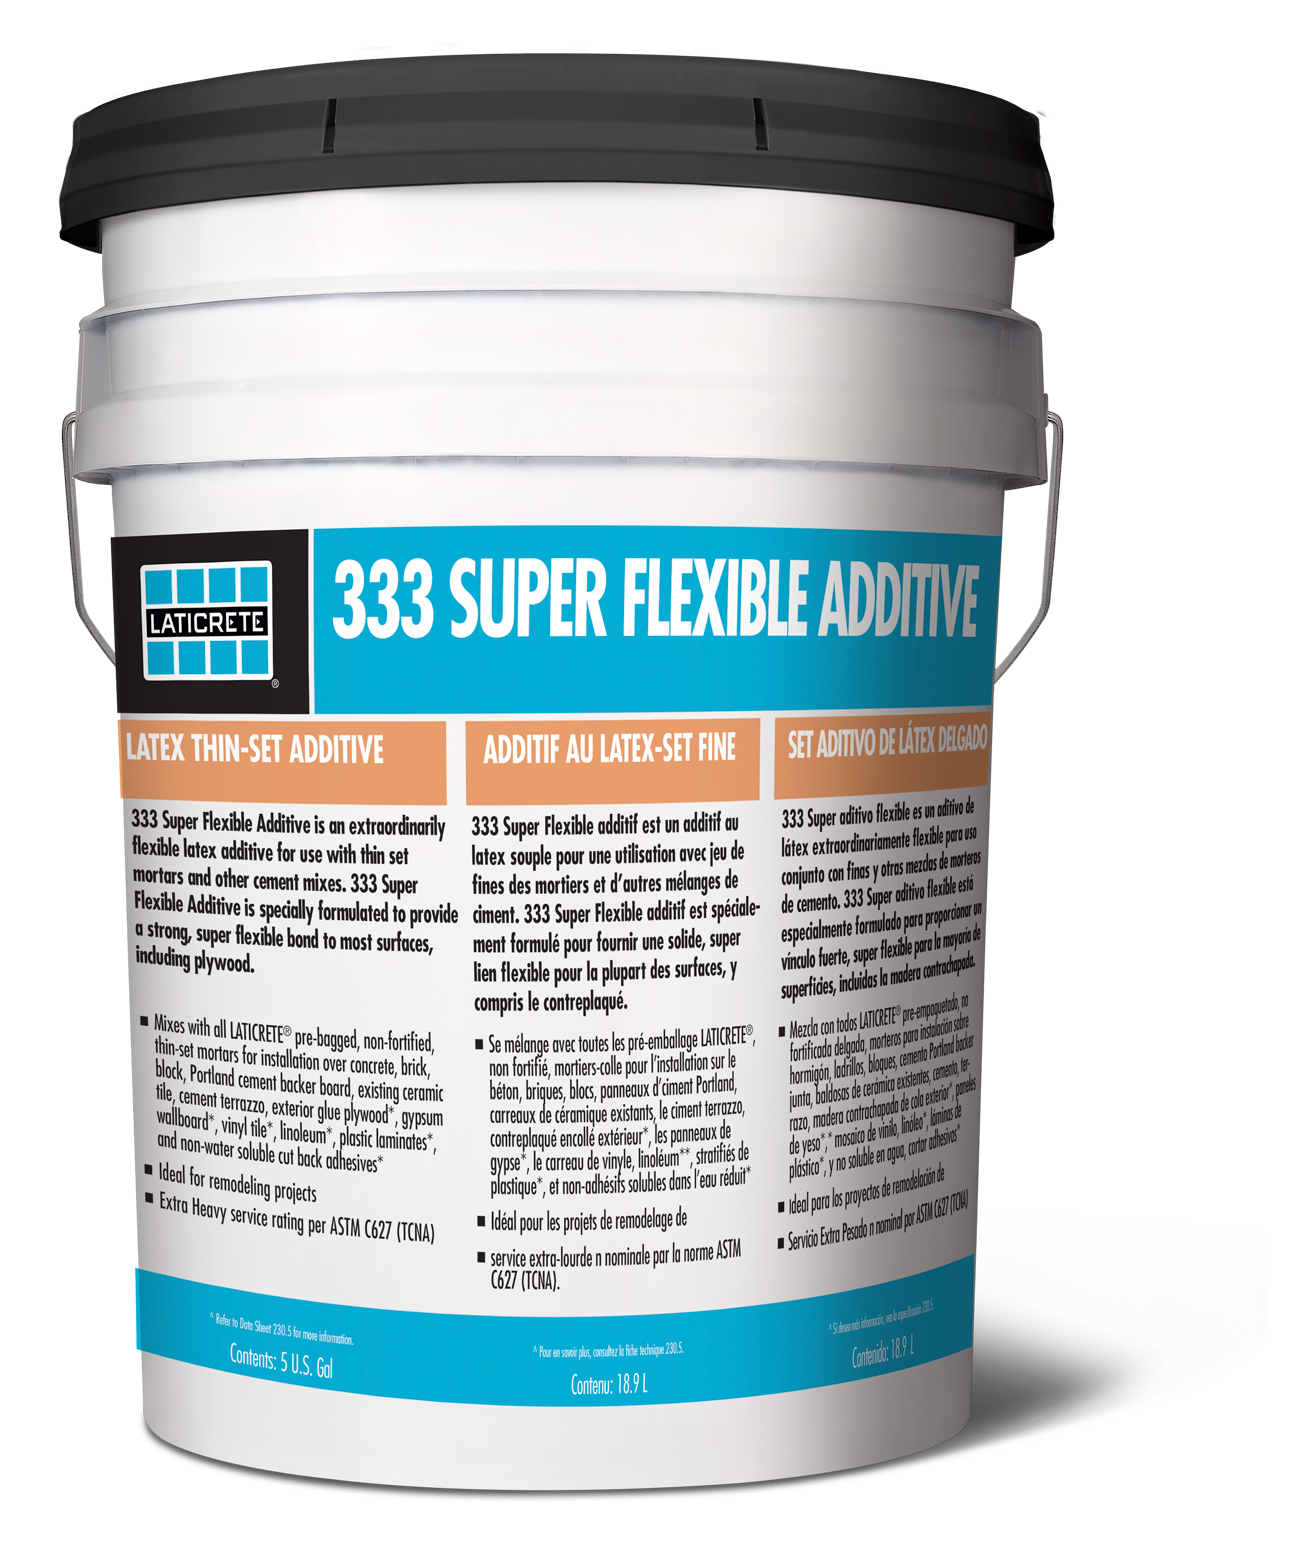 333 Super Flexible Additive